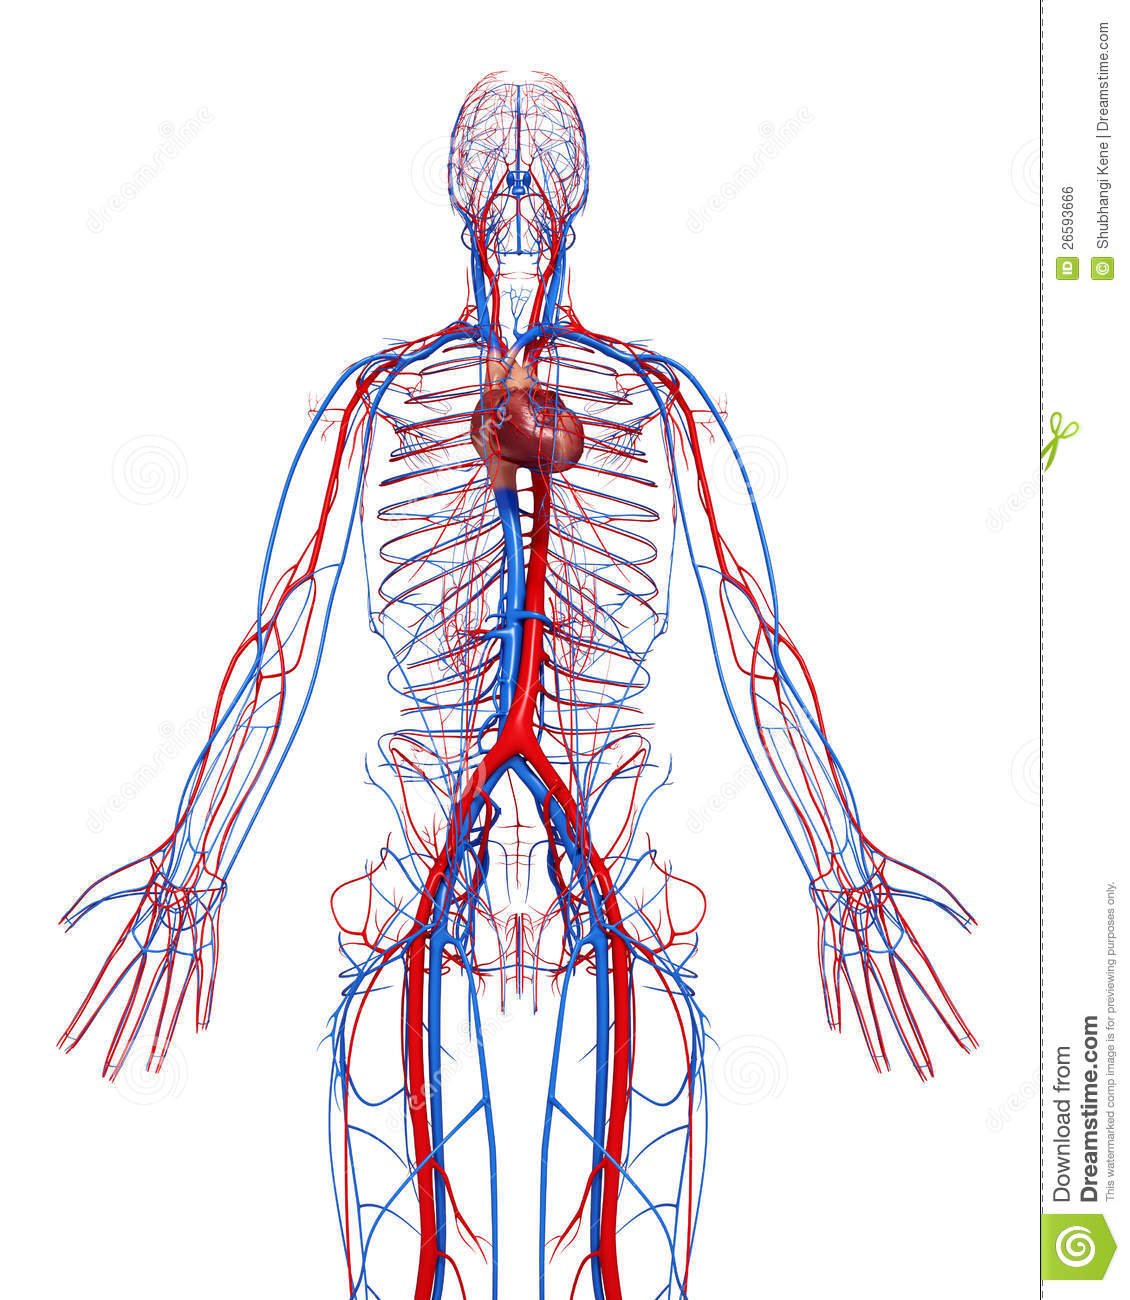 Circulatory System Of Male With Heart Stock Illustration